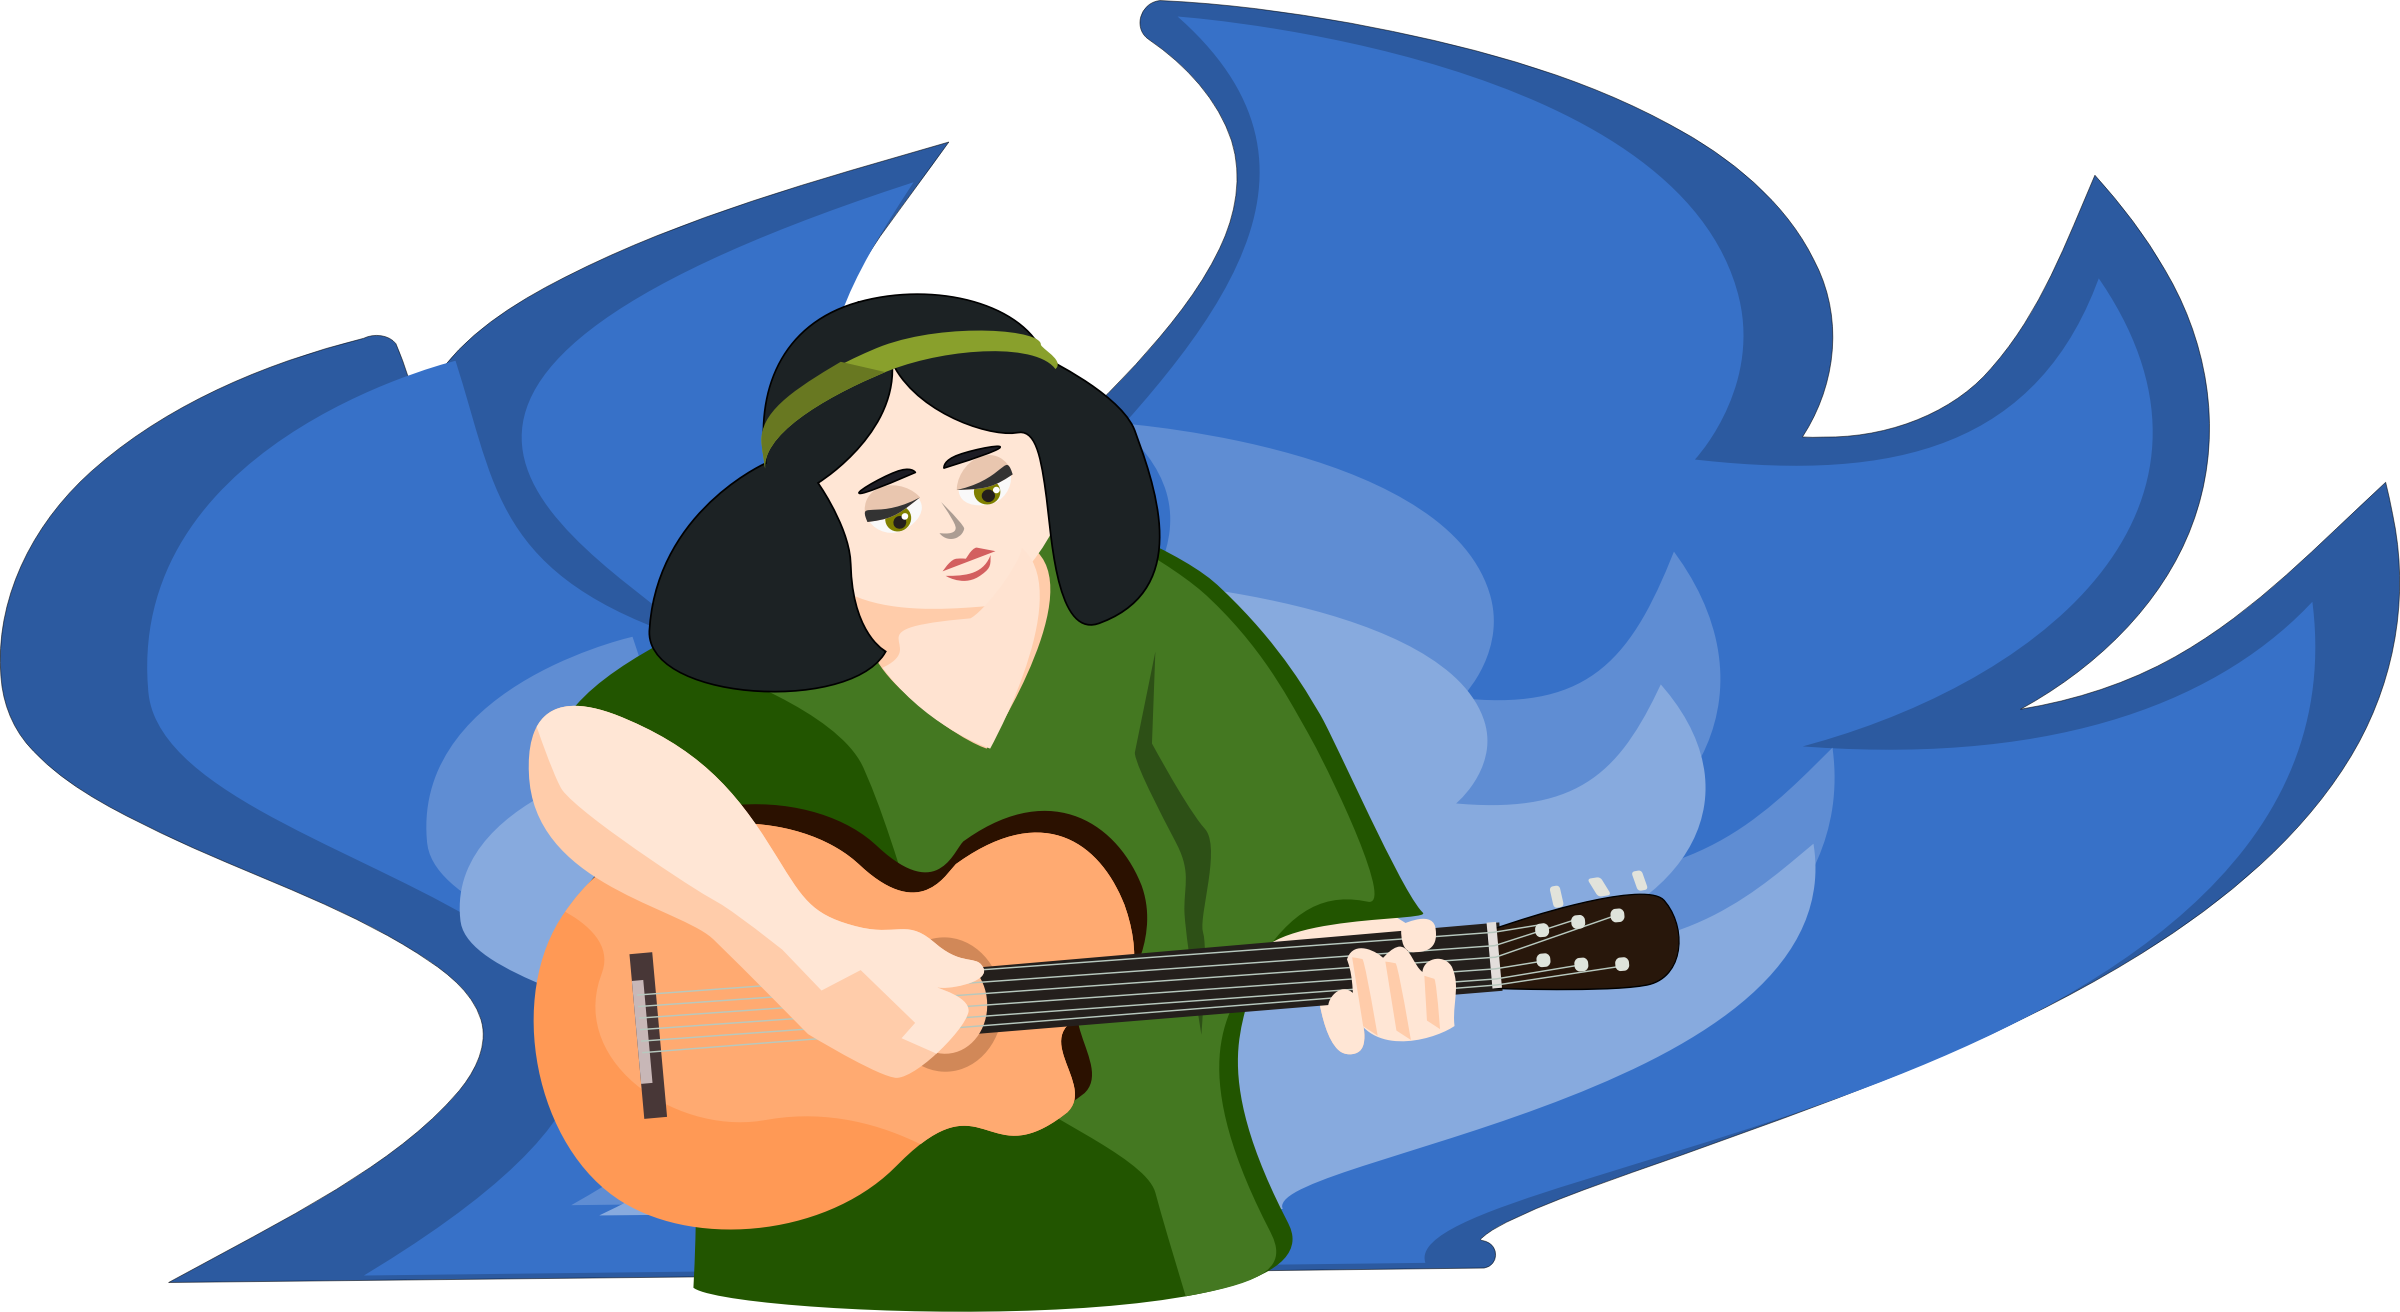 Woman clipart guitar. Bard playing gitar big